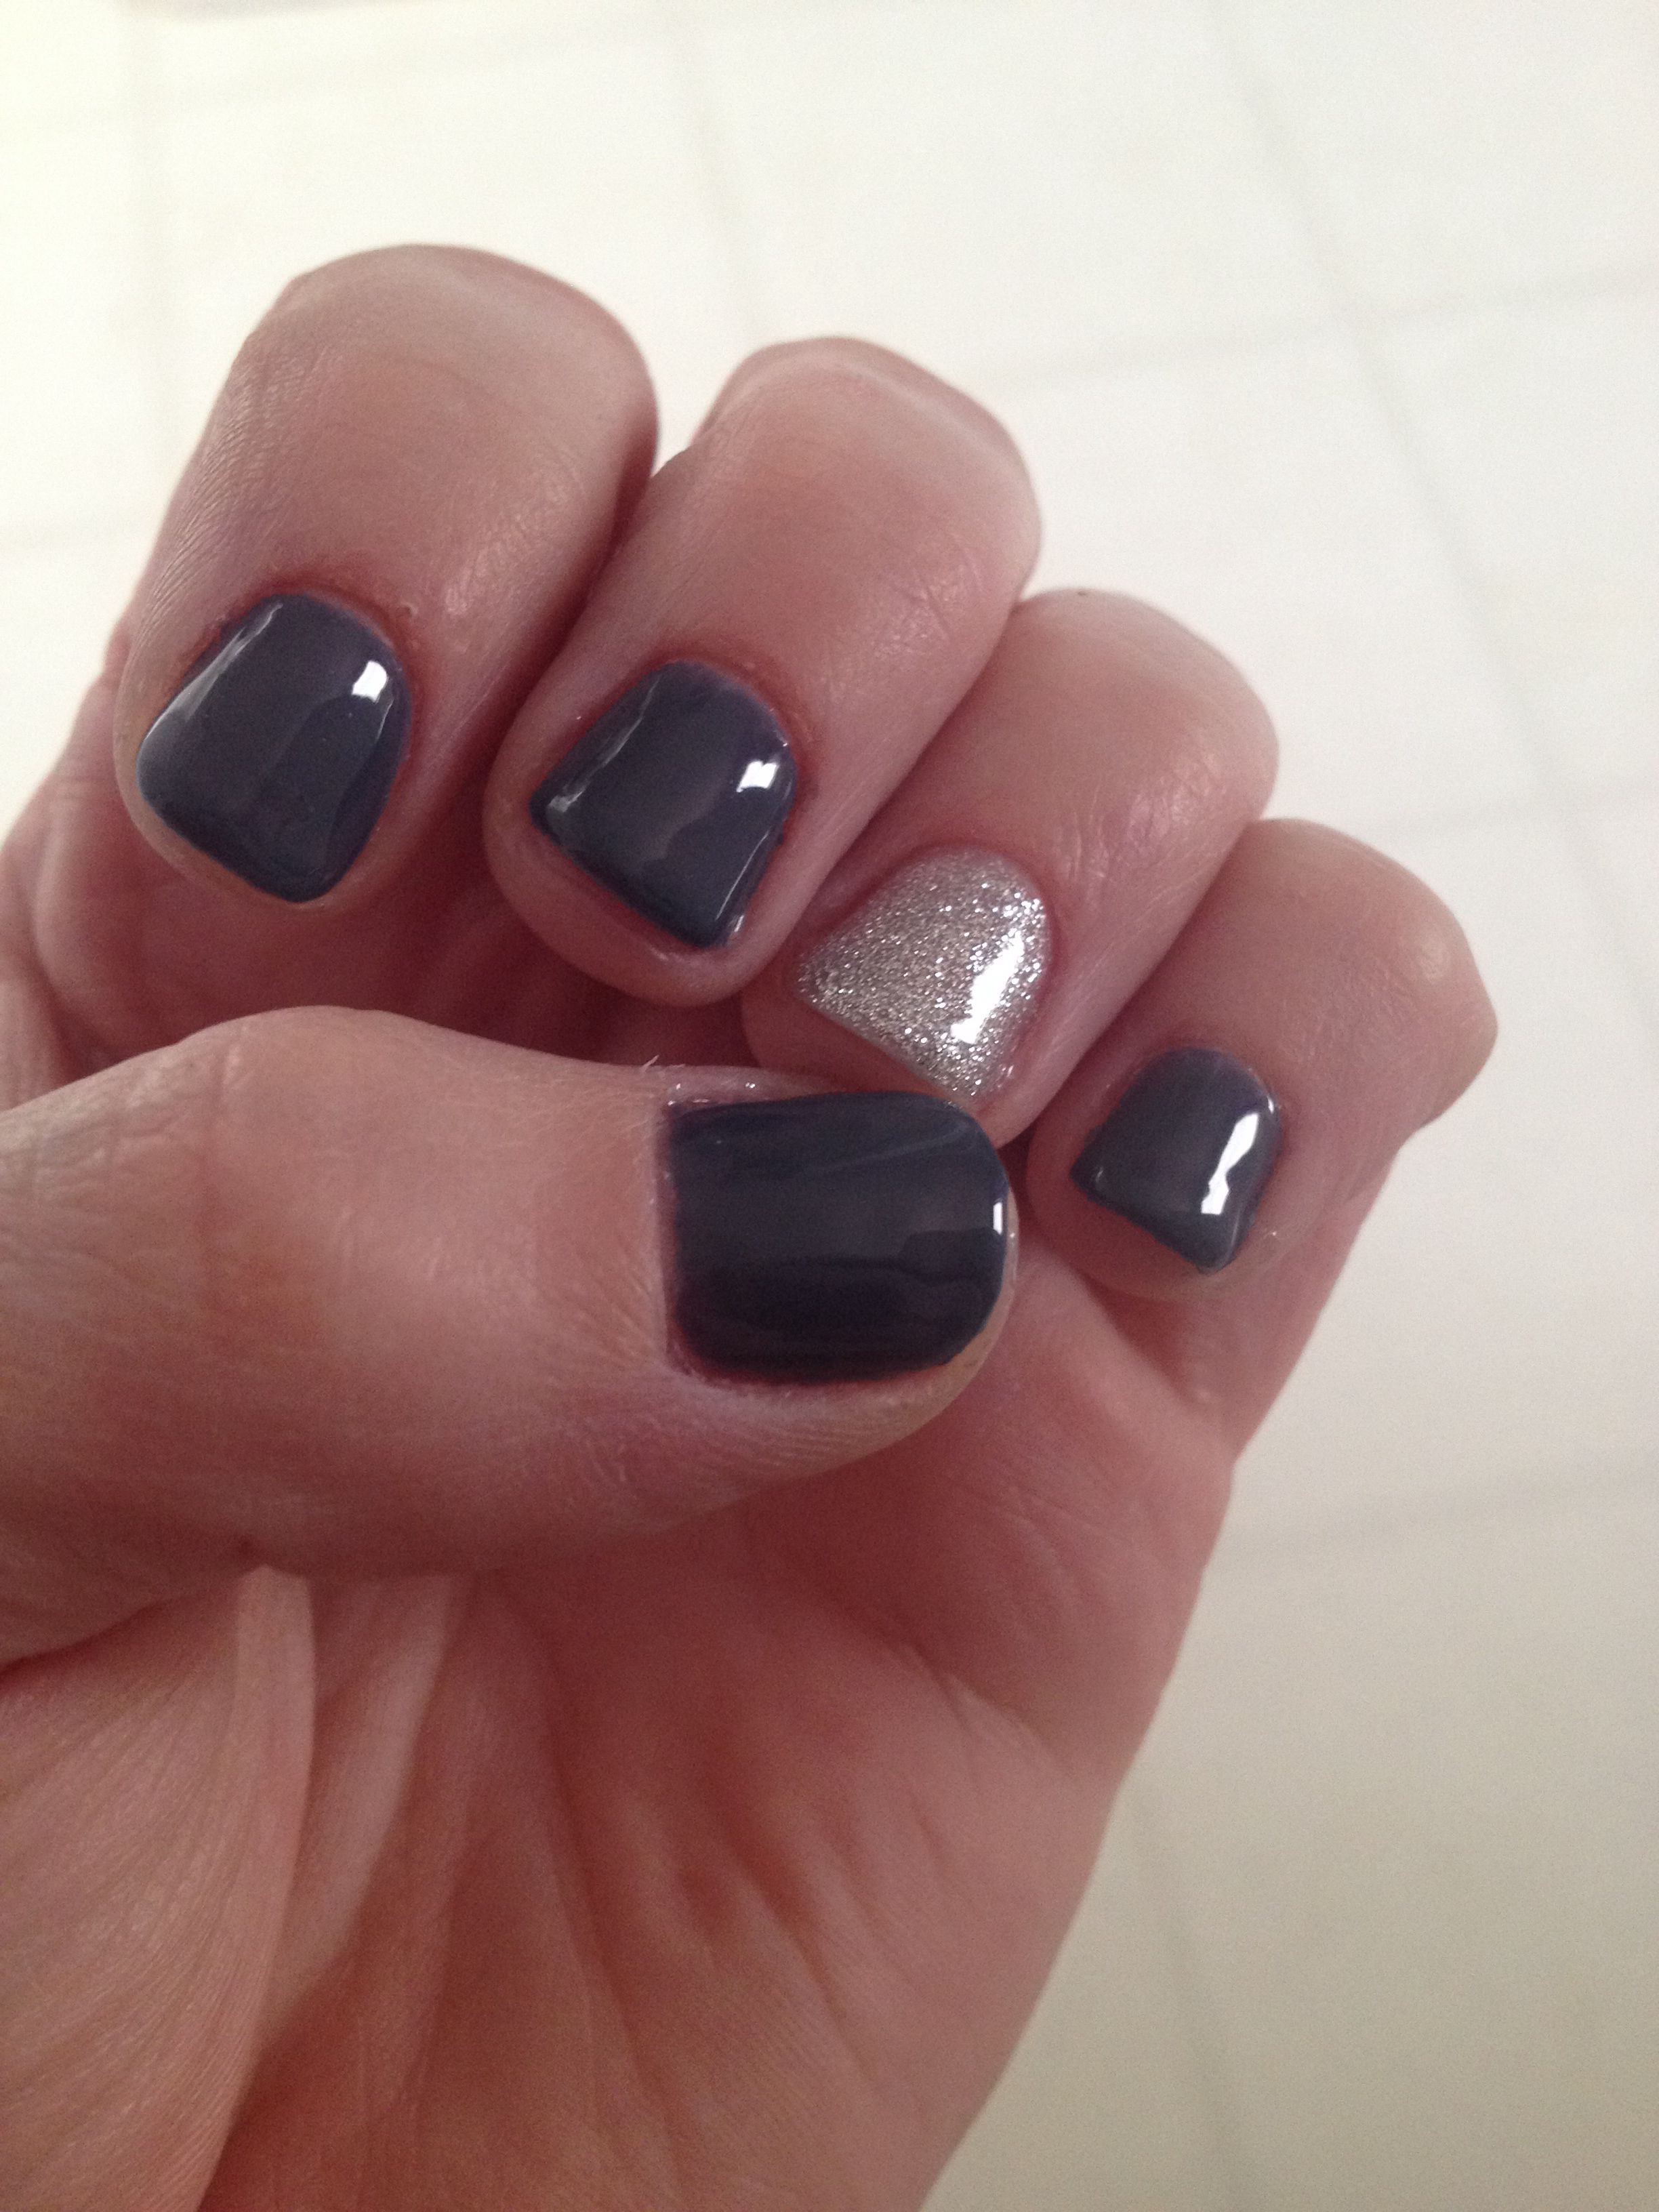 Done by French nails and spa | Nails | Pinterest | French nails